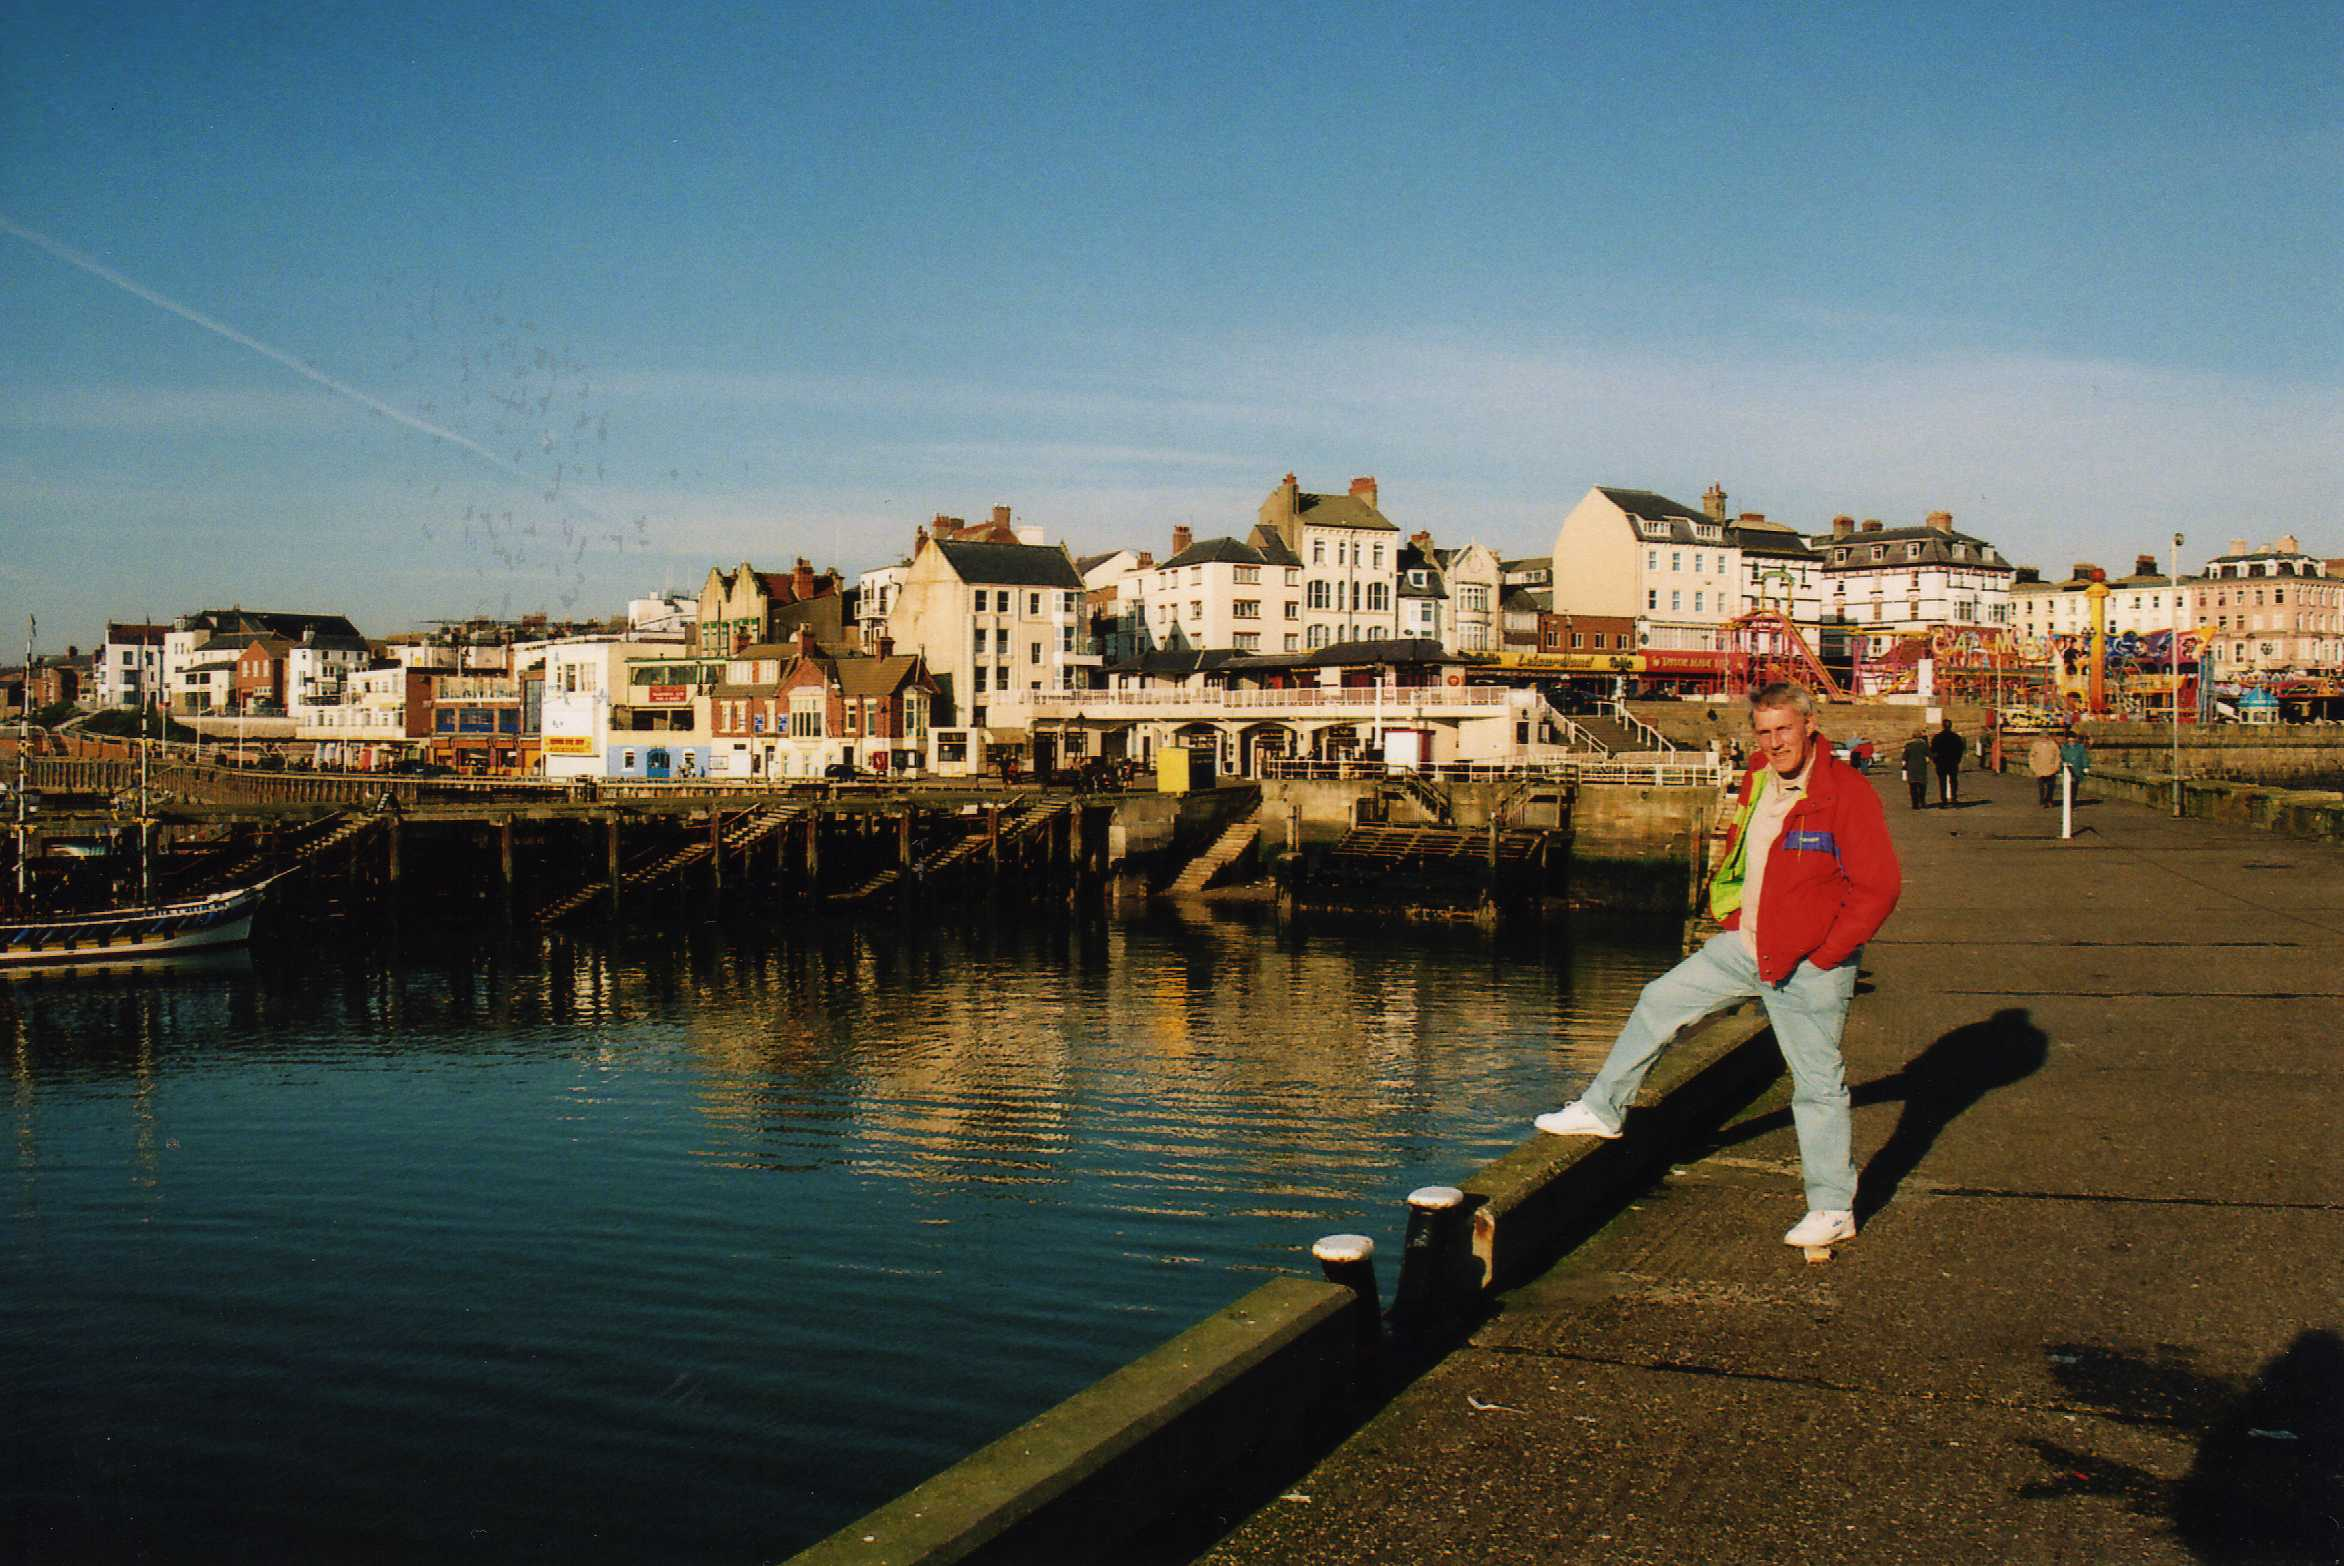 Explore historic Bridlington